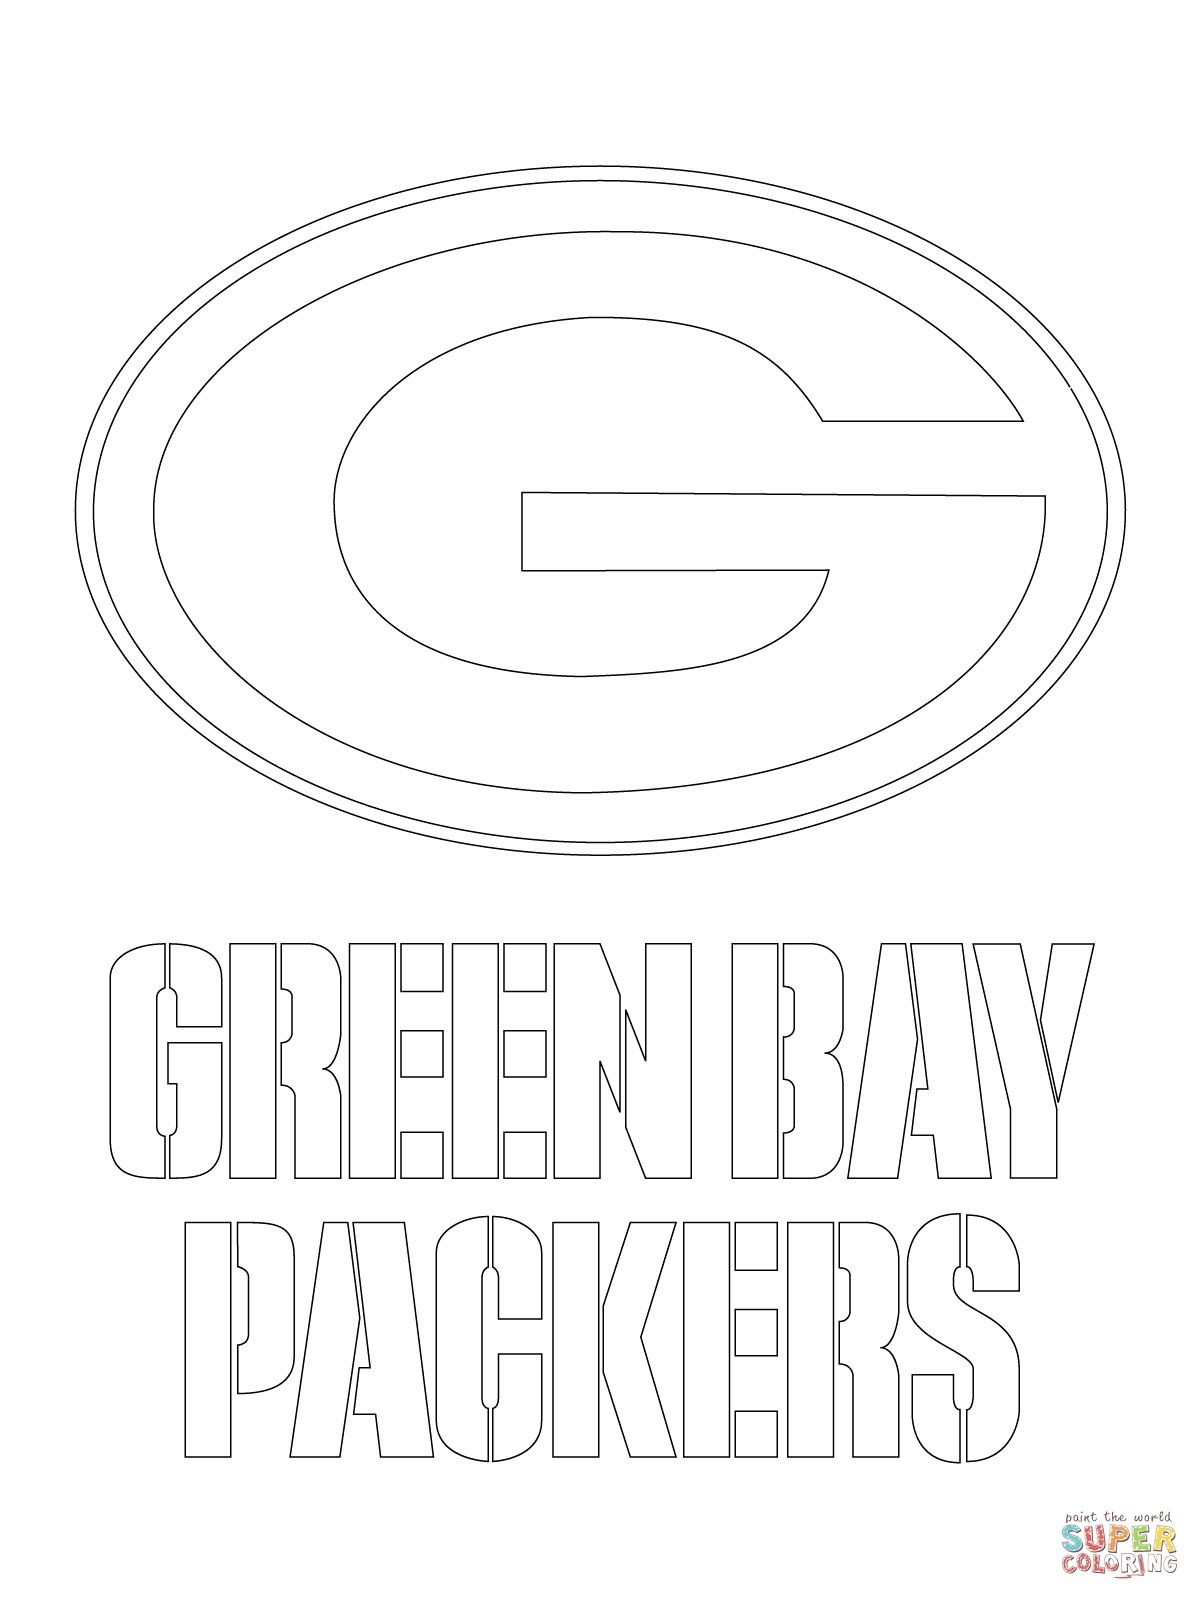 Green Bay Packers Templates | You Might Also Be Interested In - Free Printable Green Bay Packers Logo